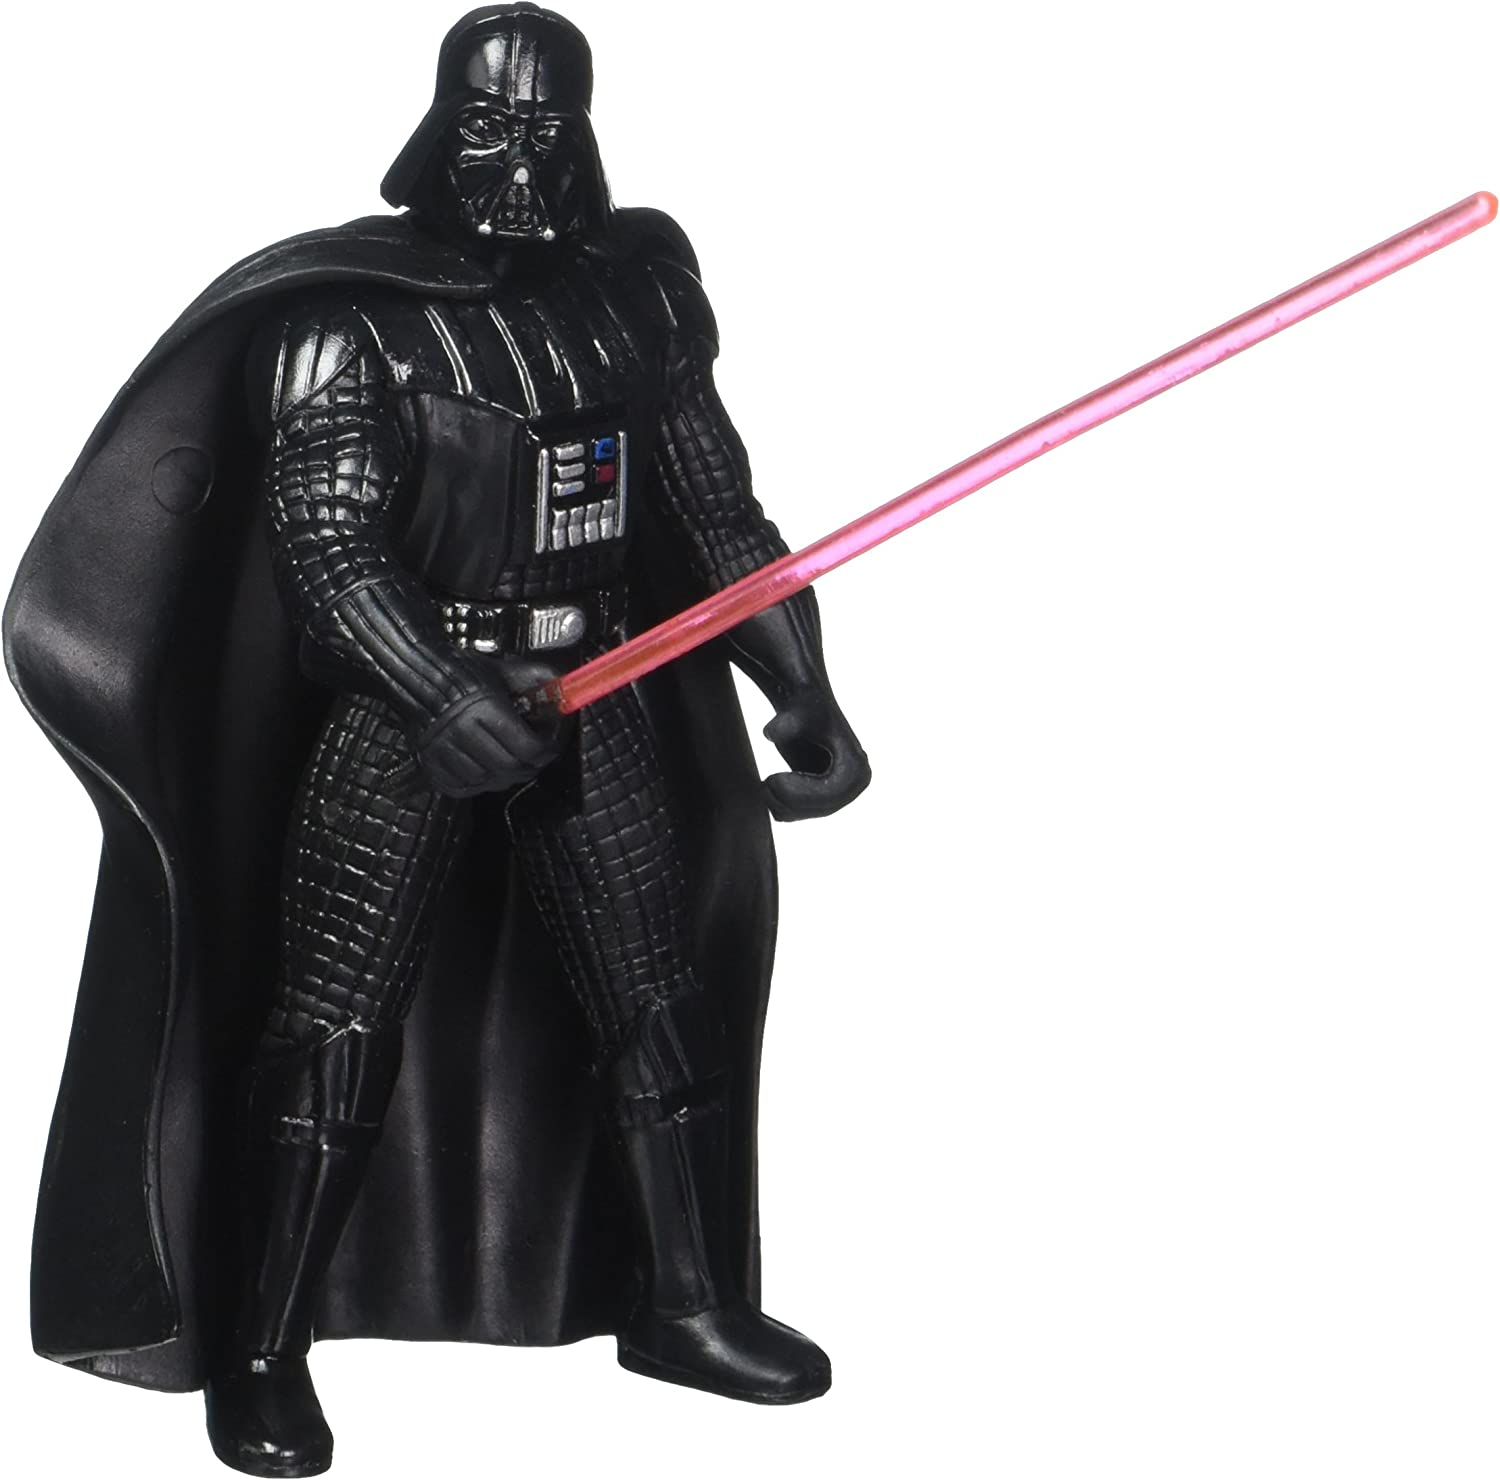 """3.75/"""" Star Wars Series Darth Vader Action  Figure  with light sword Toy"""